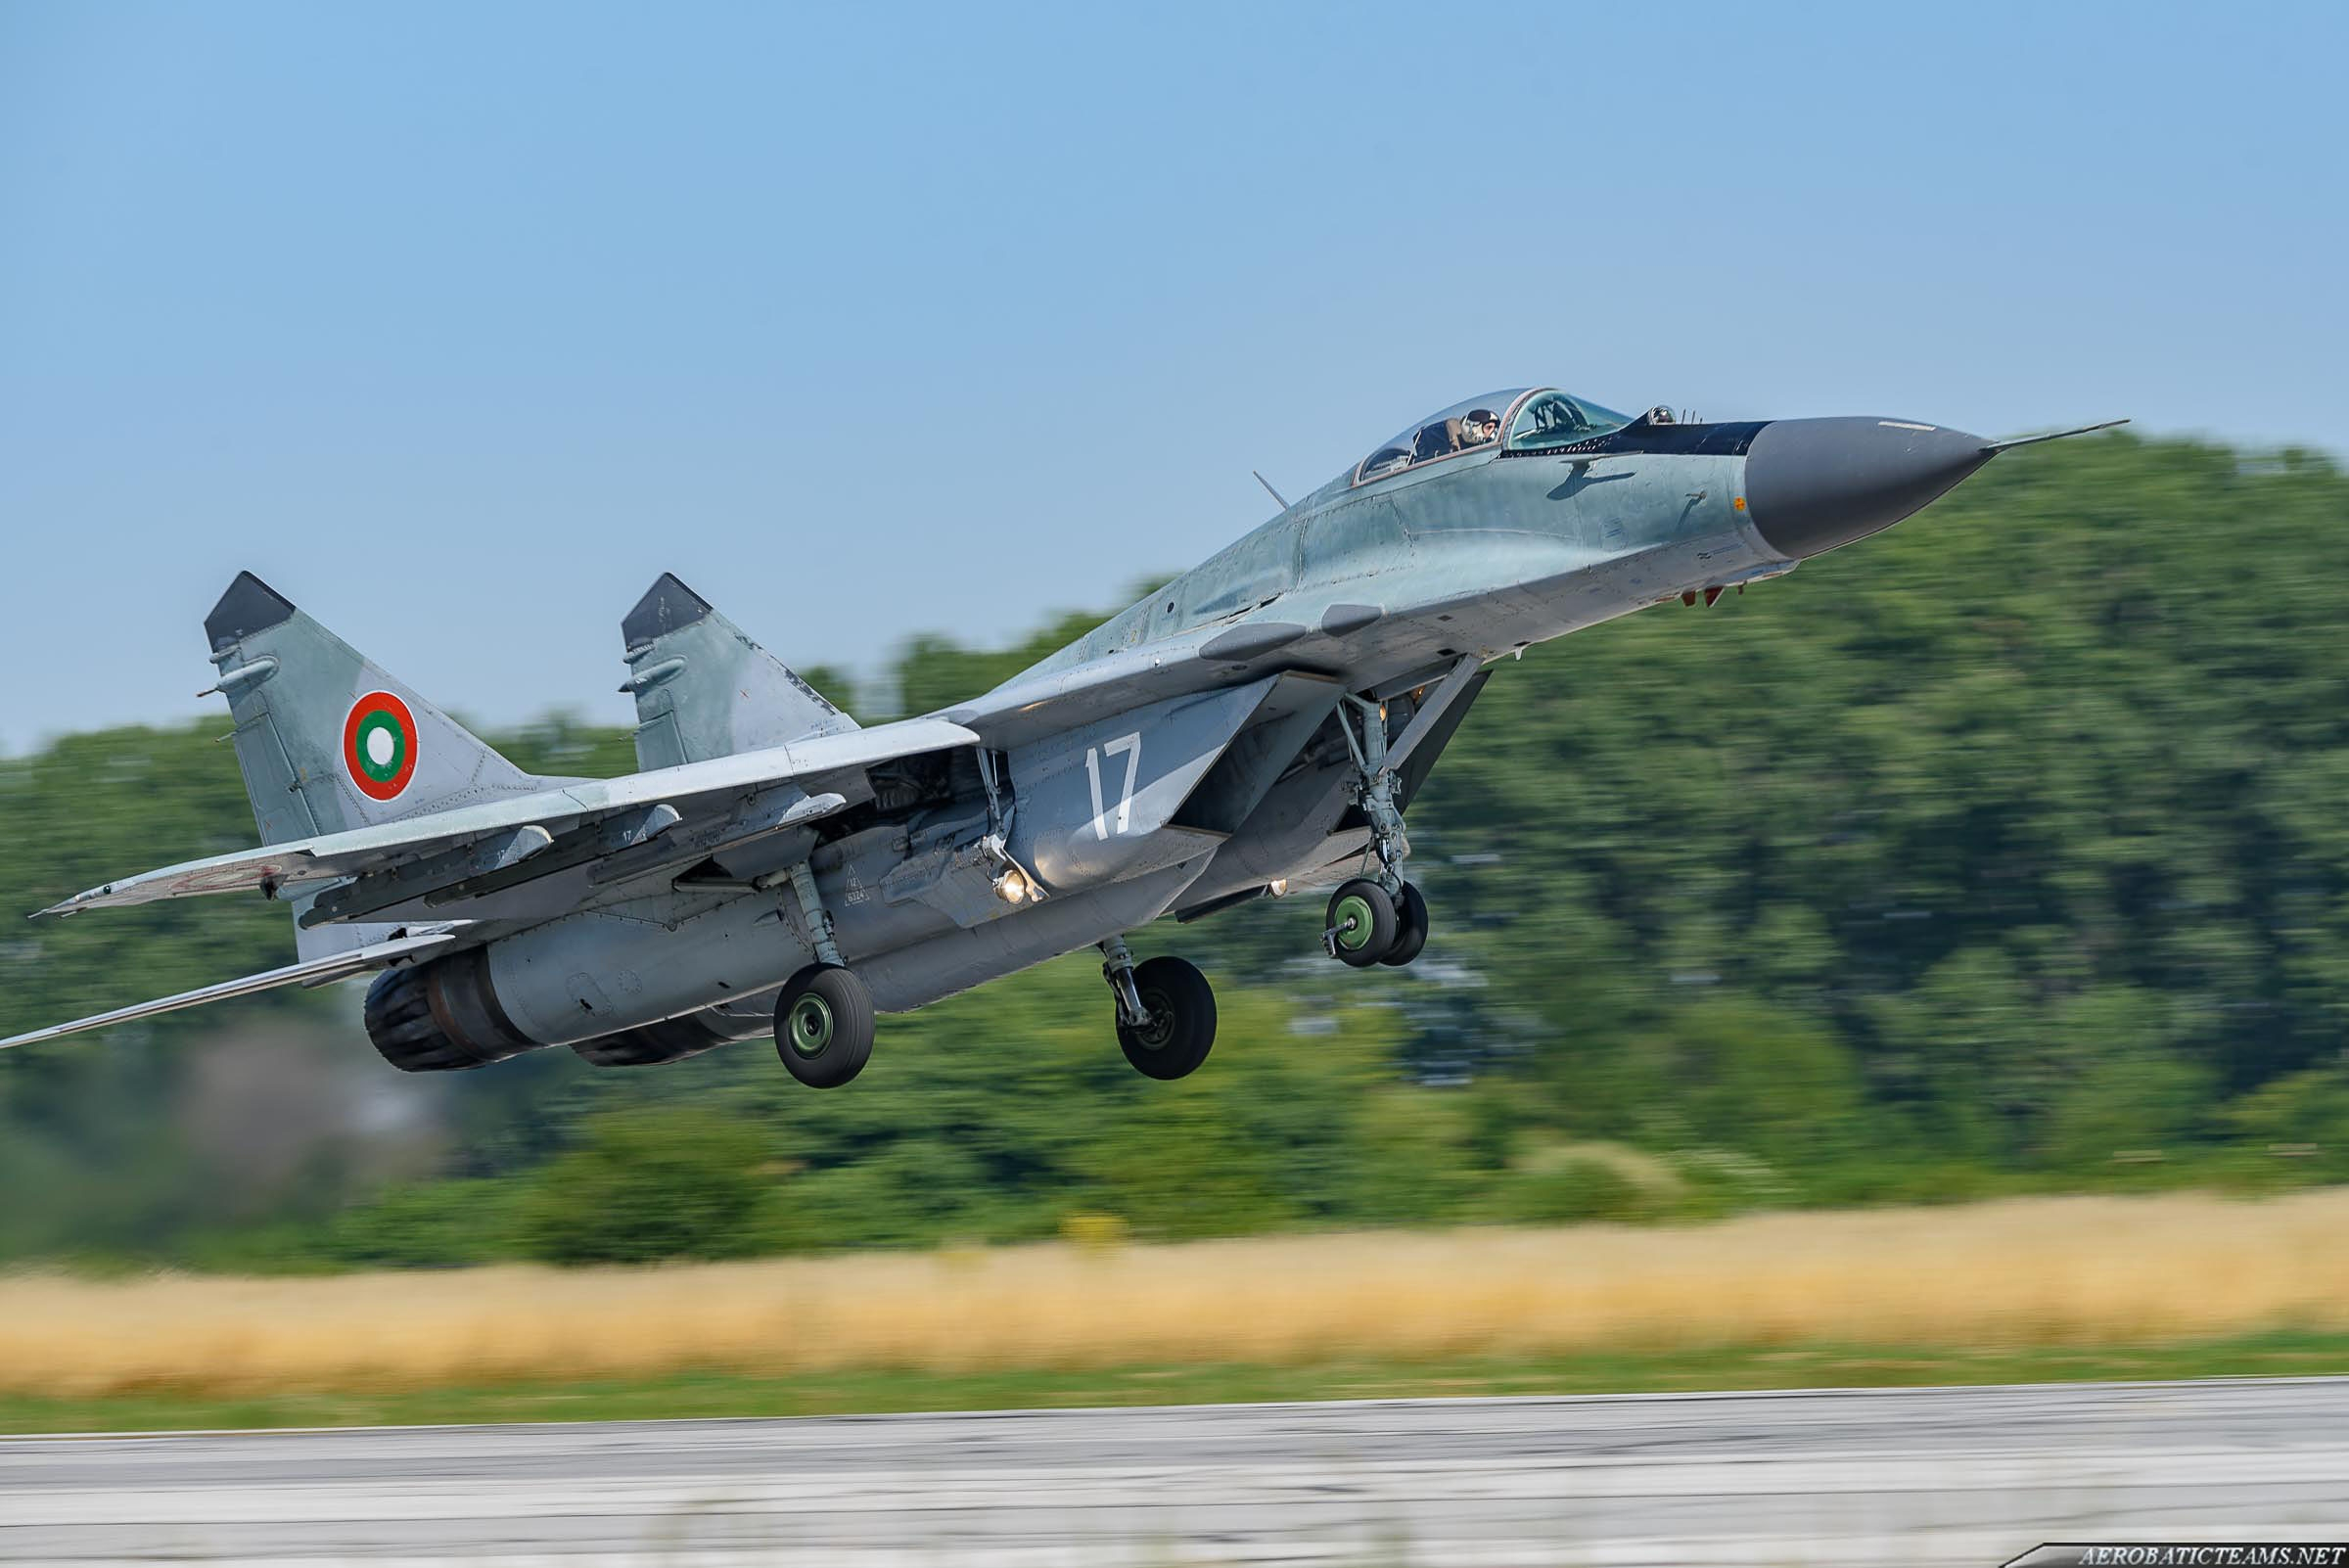 Bulgarian Air Force MiG-29